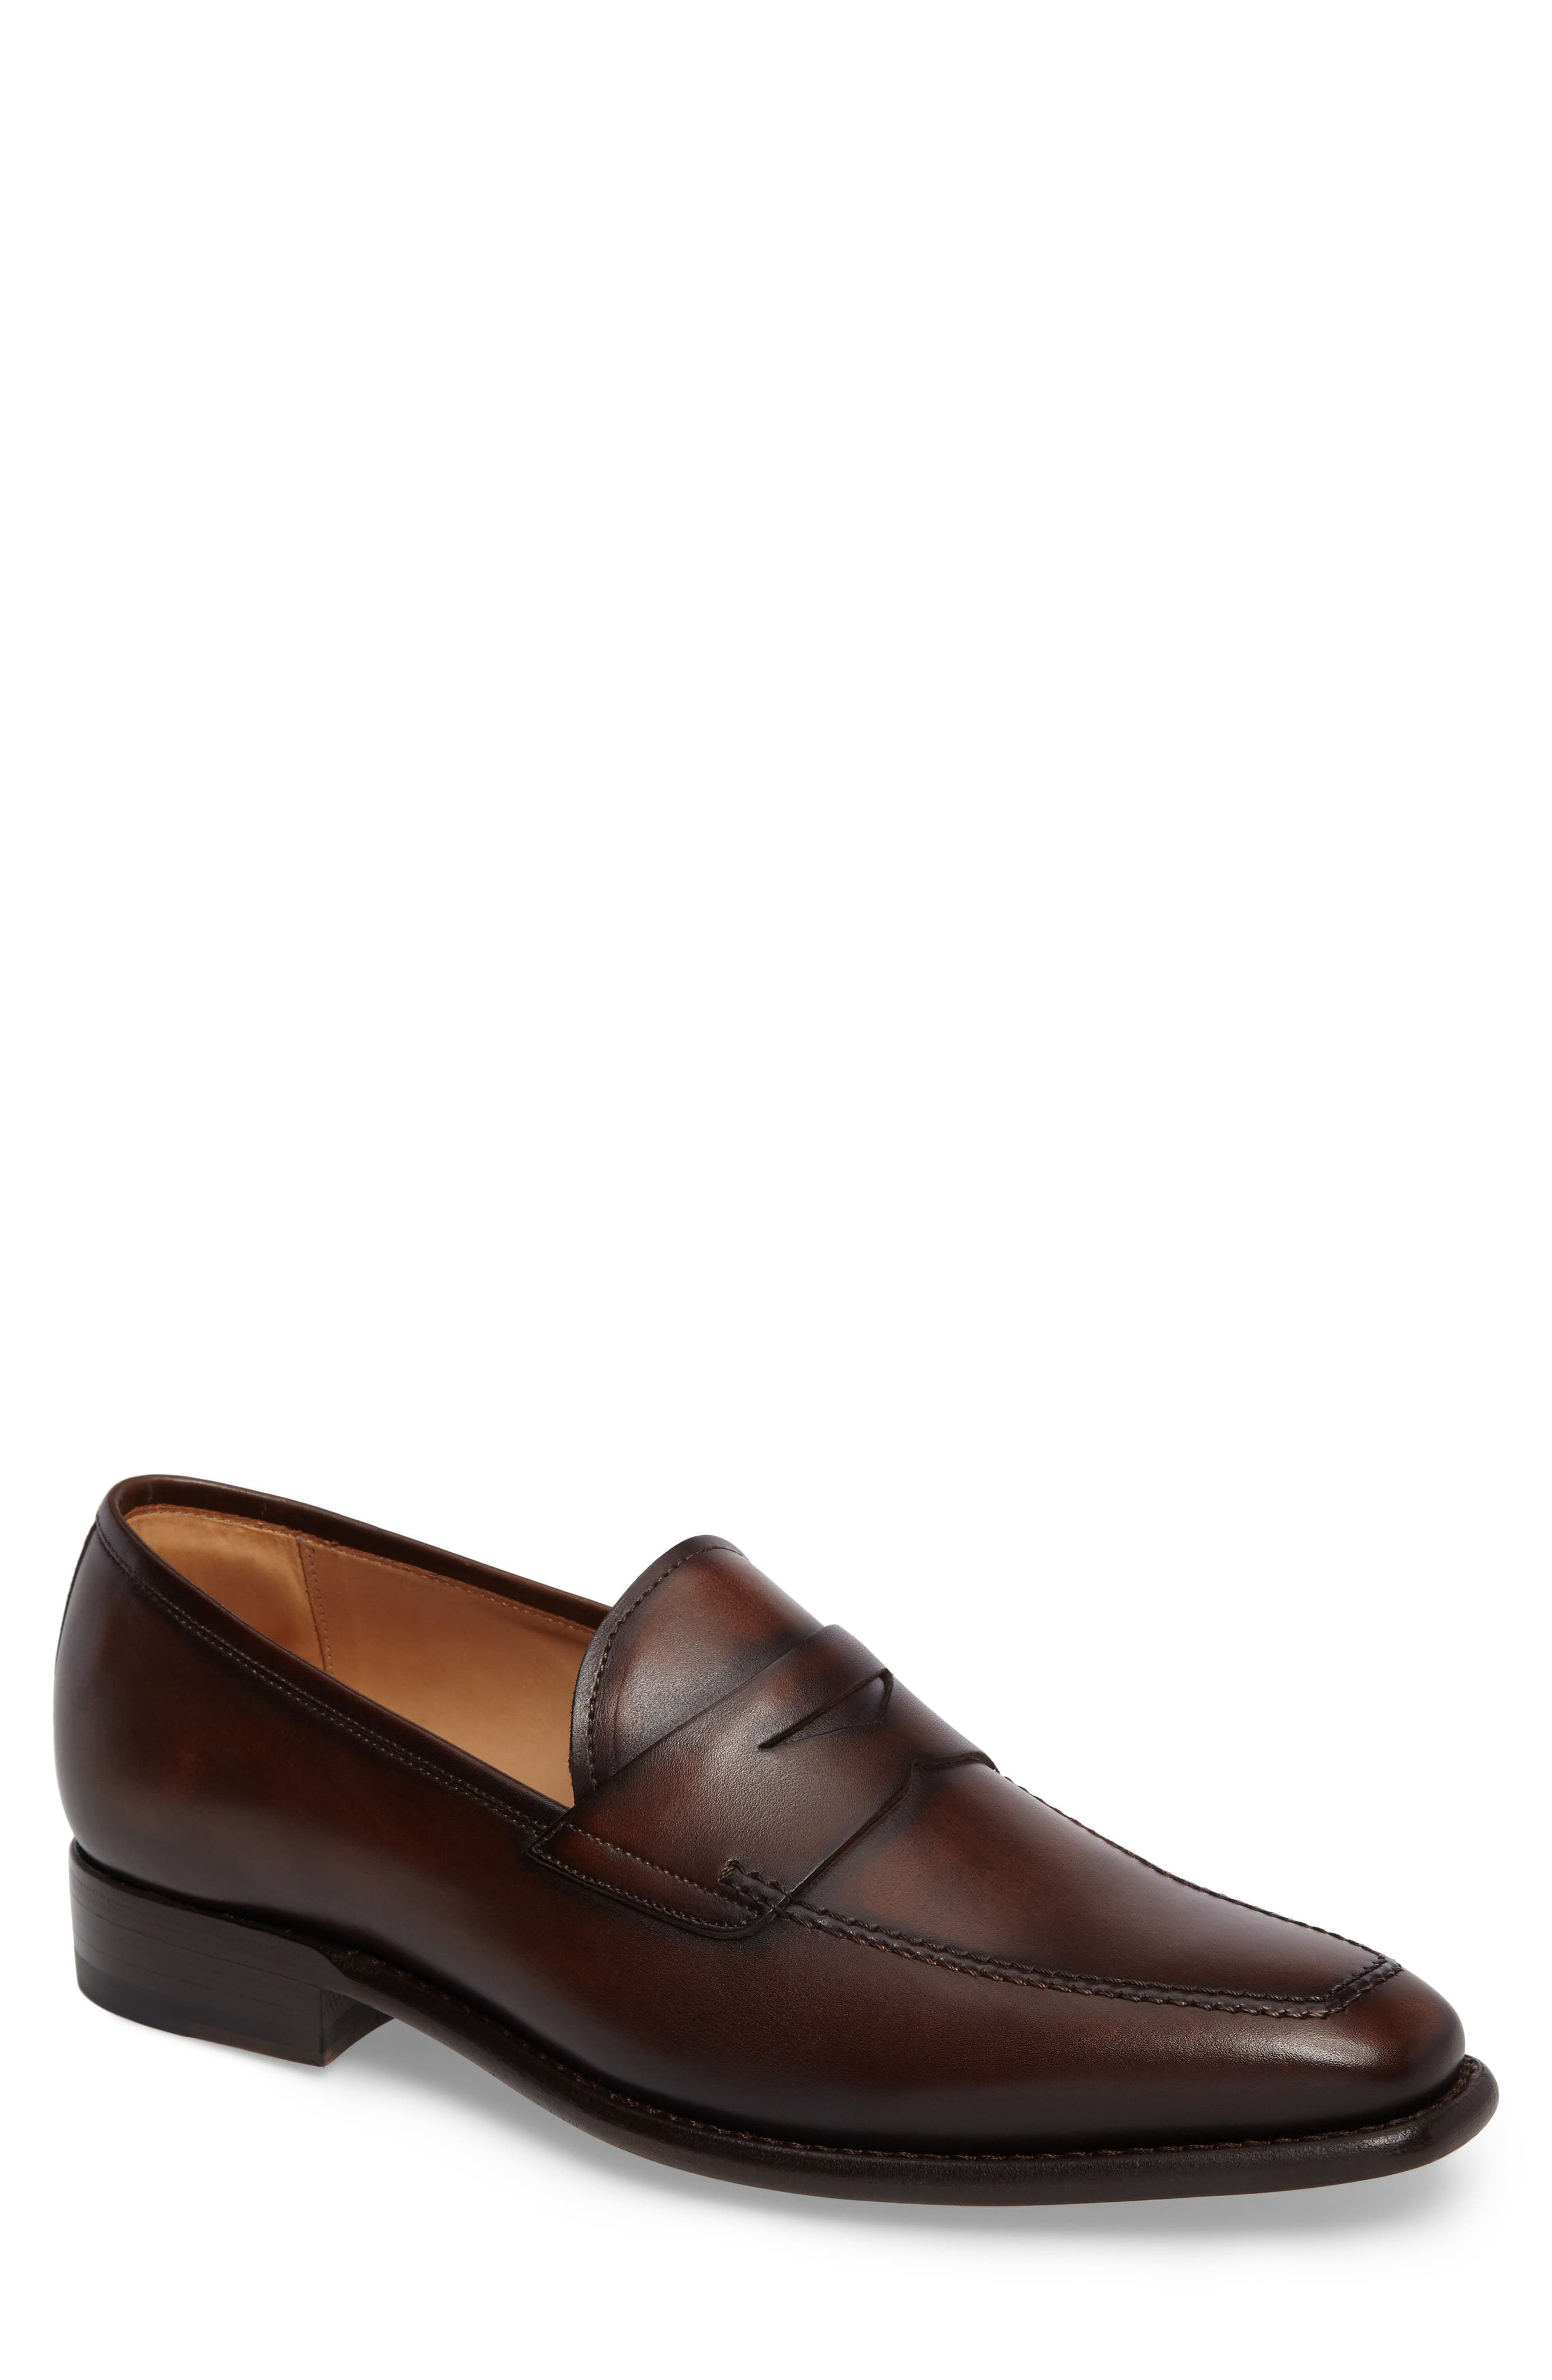 Claude Penny Loafer,                         Main,                         color, BROWN LEATHER